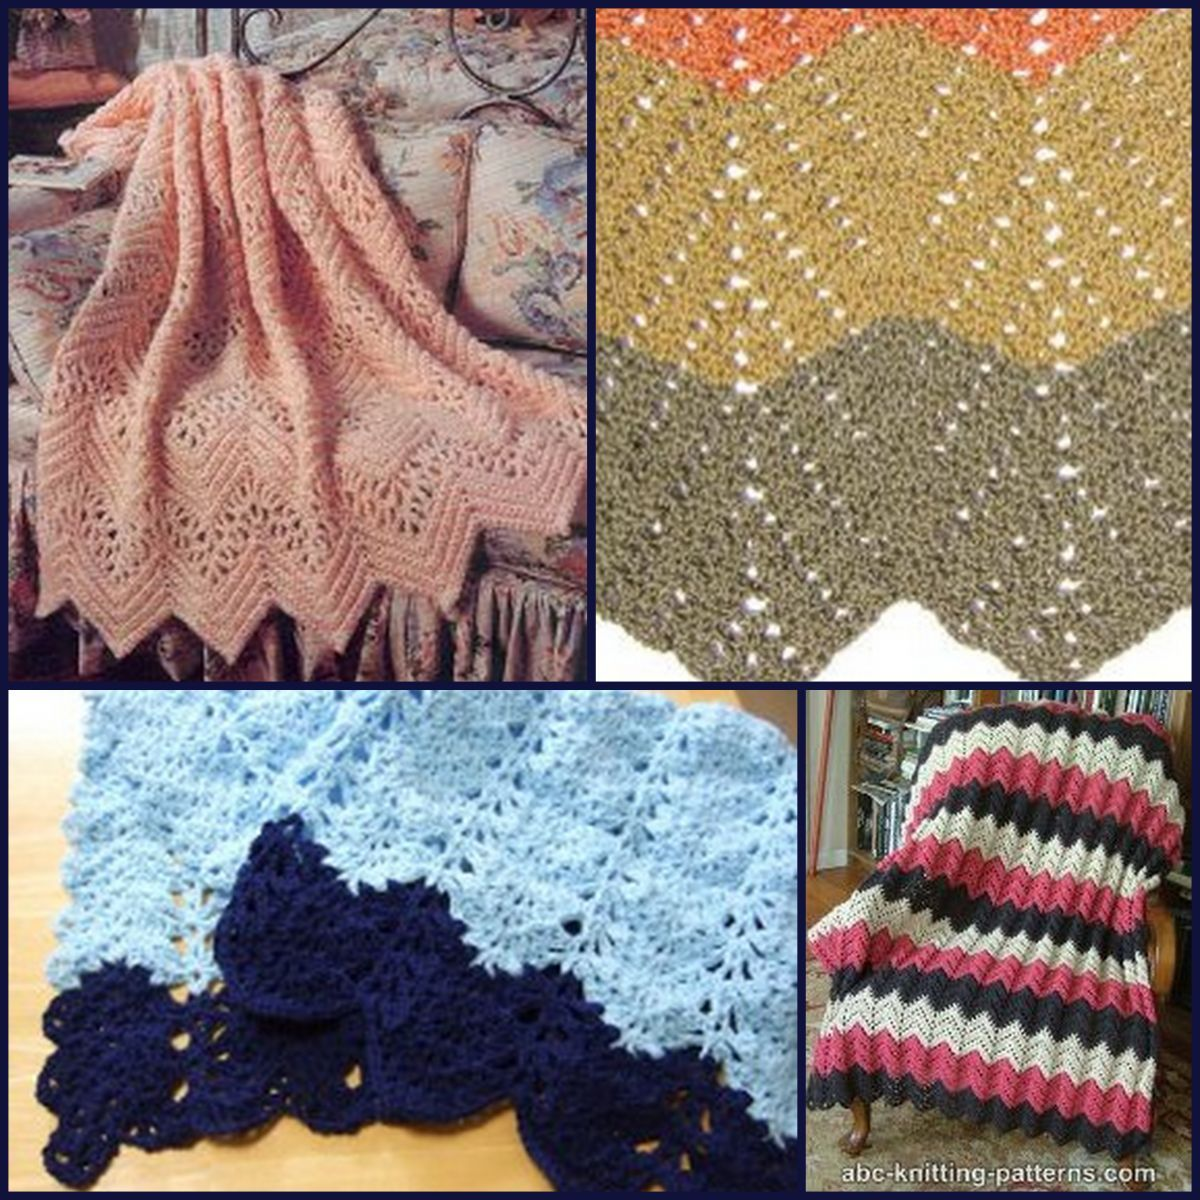 20 Lace Crochet Designs for Afghans   Free crochet afghan patterns ...